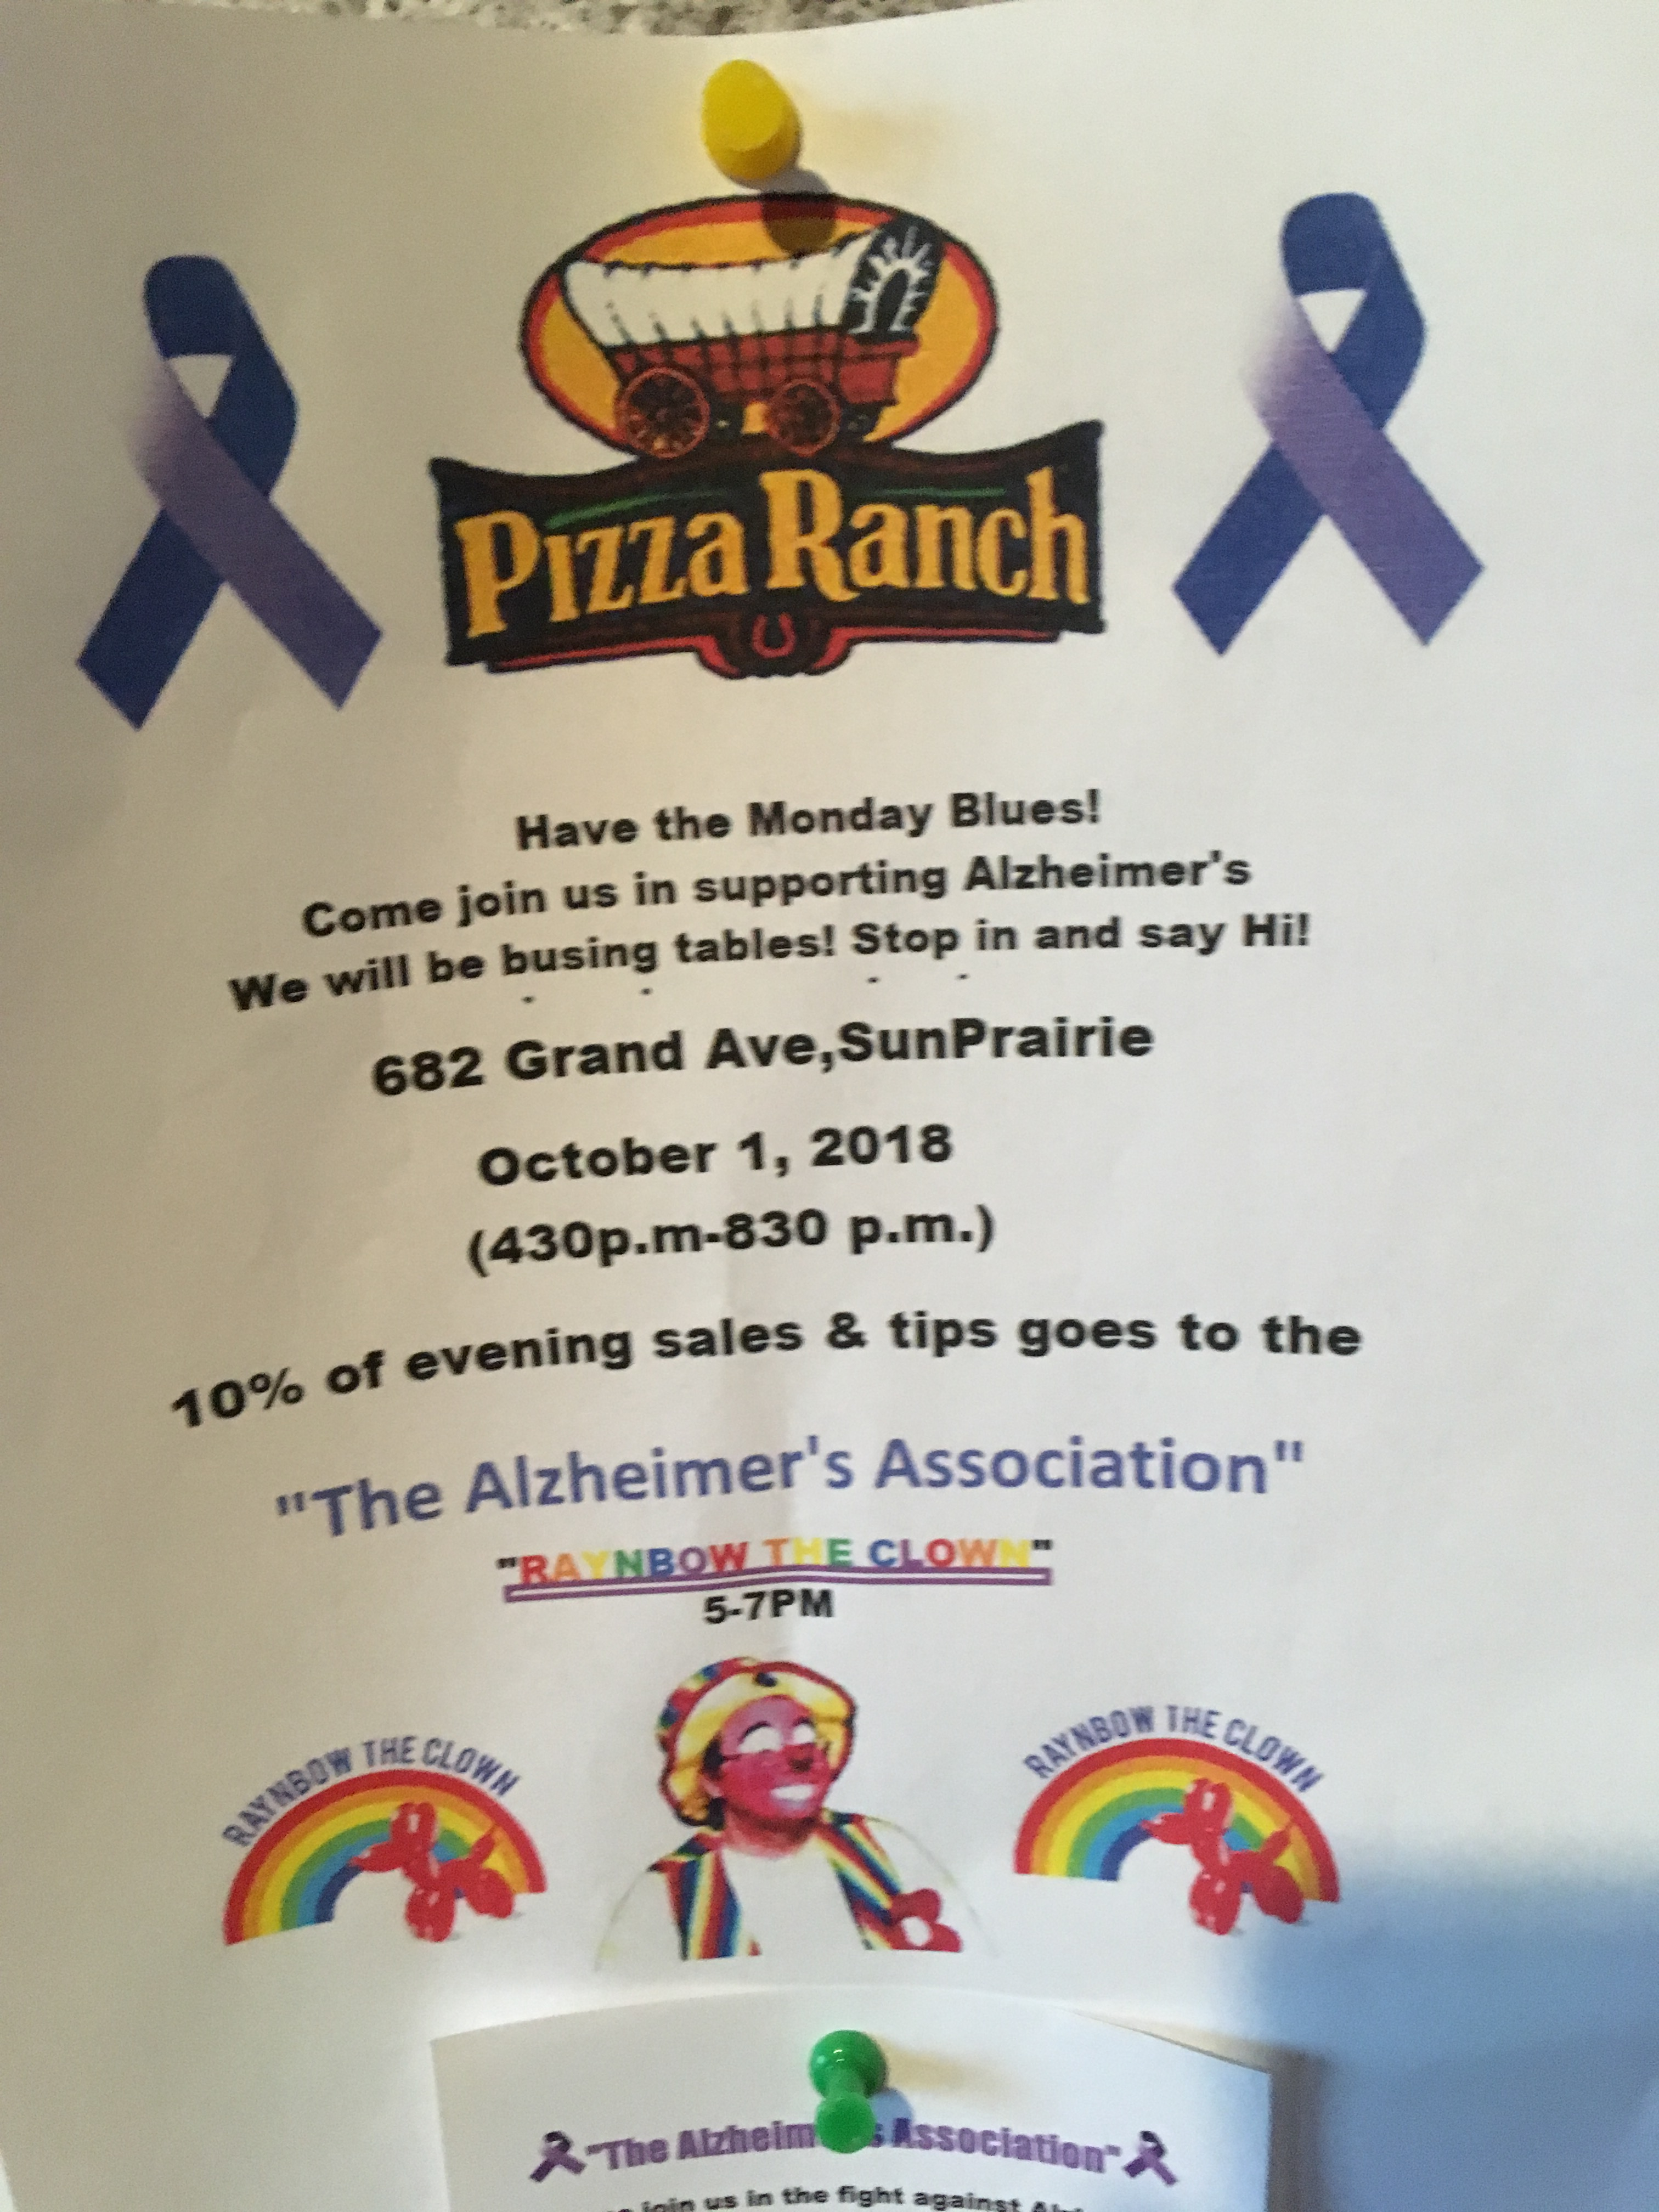 Pizza Ranch notice - Alzheimer's fundraiser with Raynbow